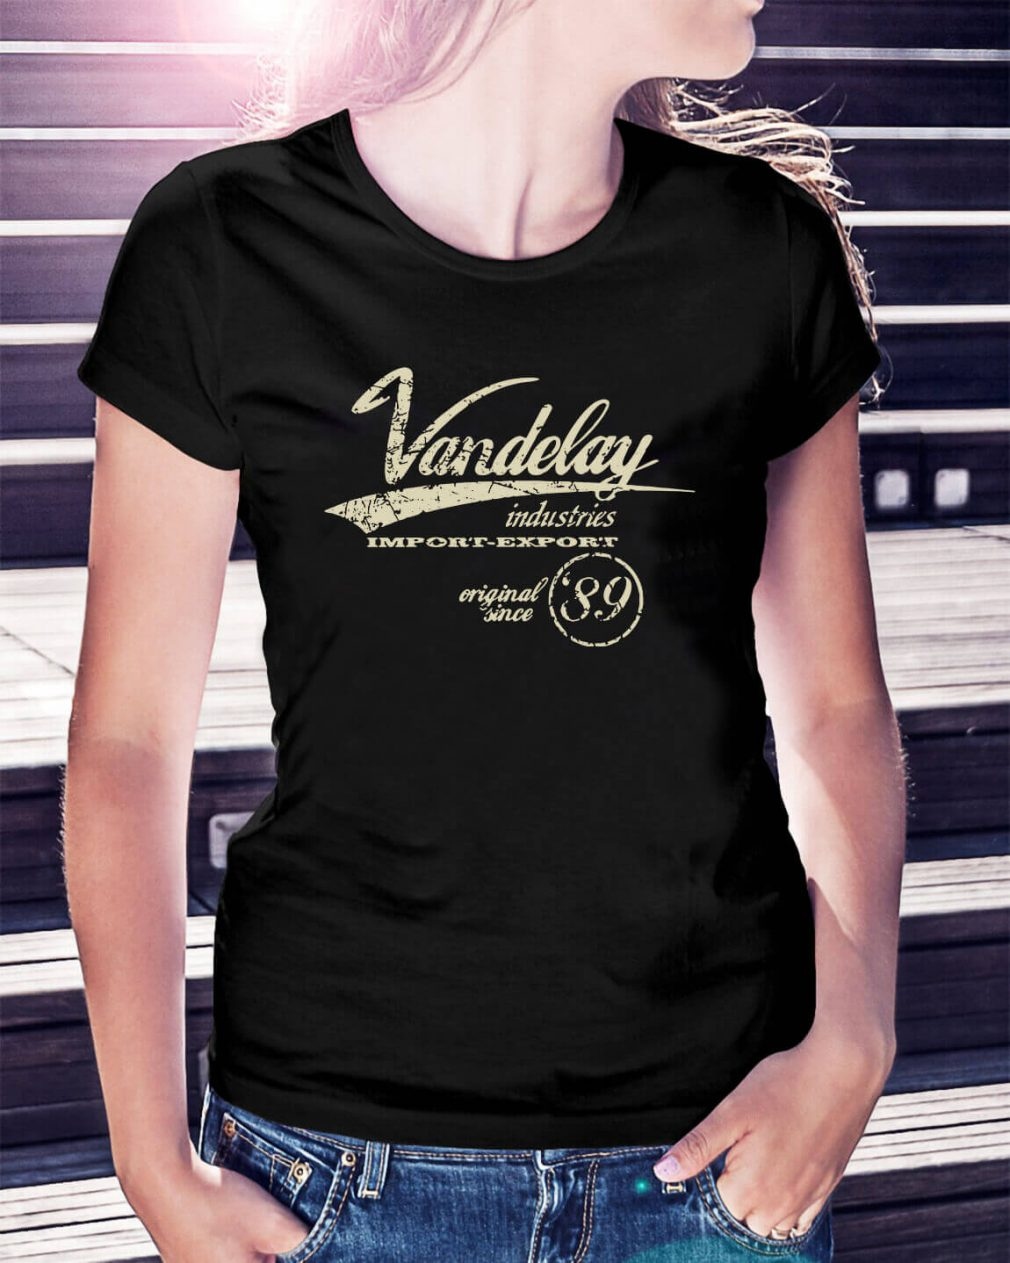 Vandelay industries importer exporter original since Ladies Tee